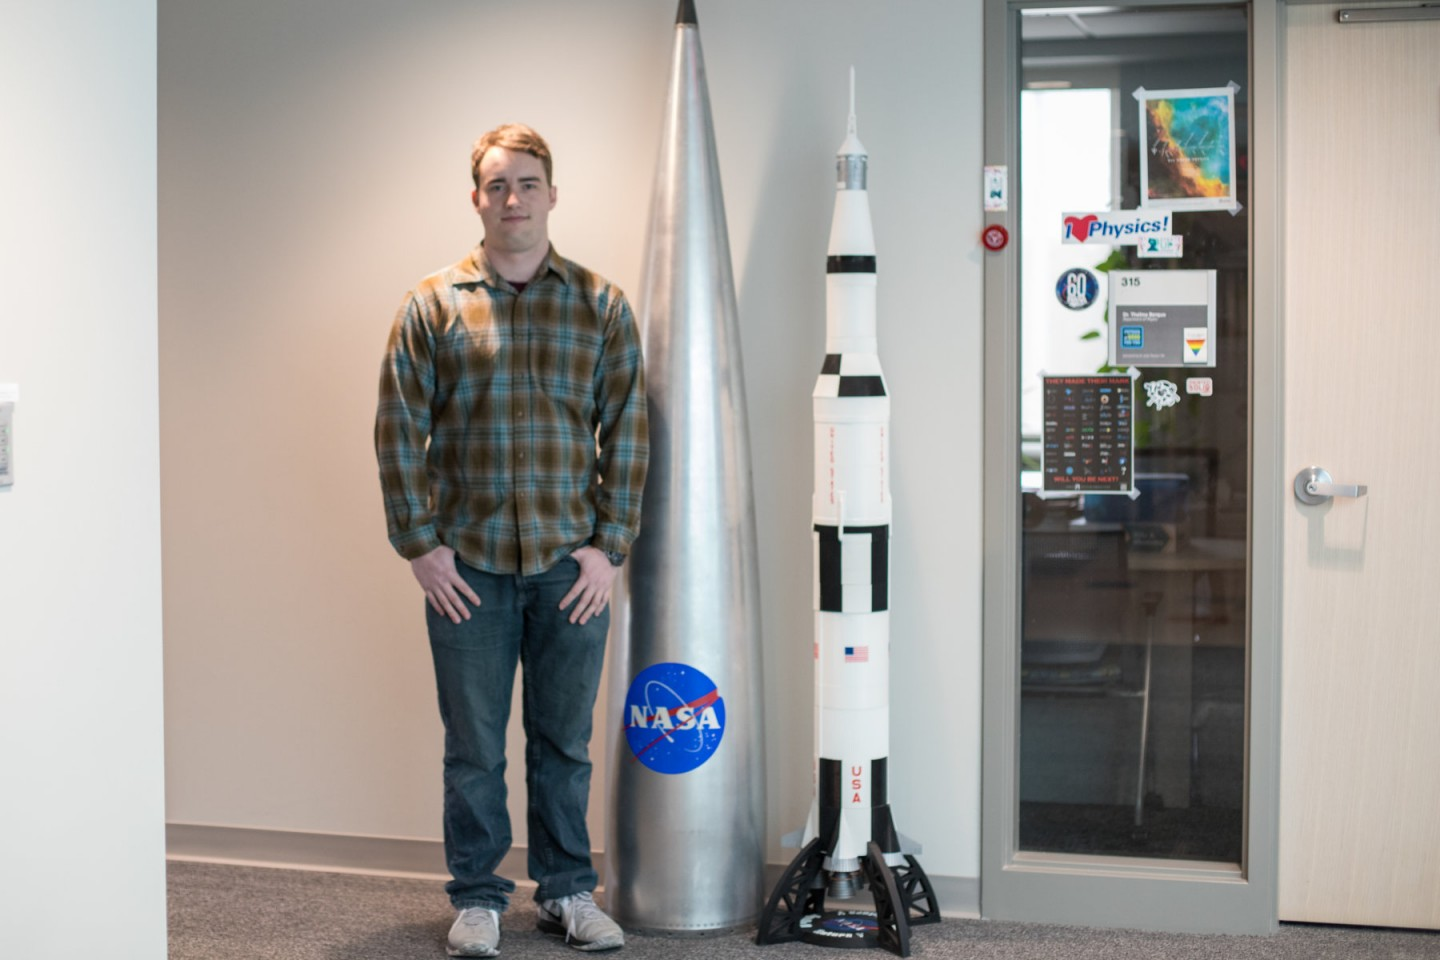 Tommy Styrvoky standing next to 3D printed rocket